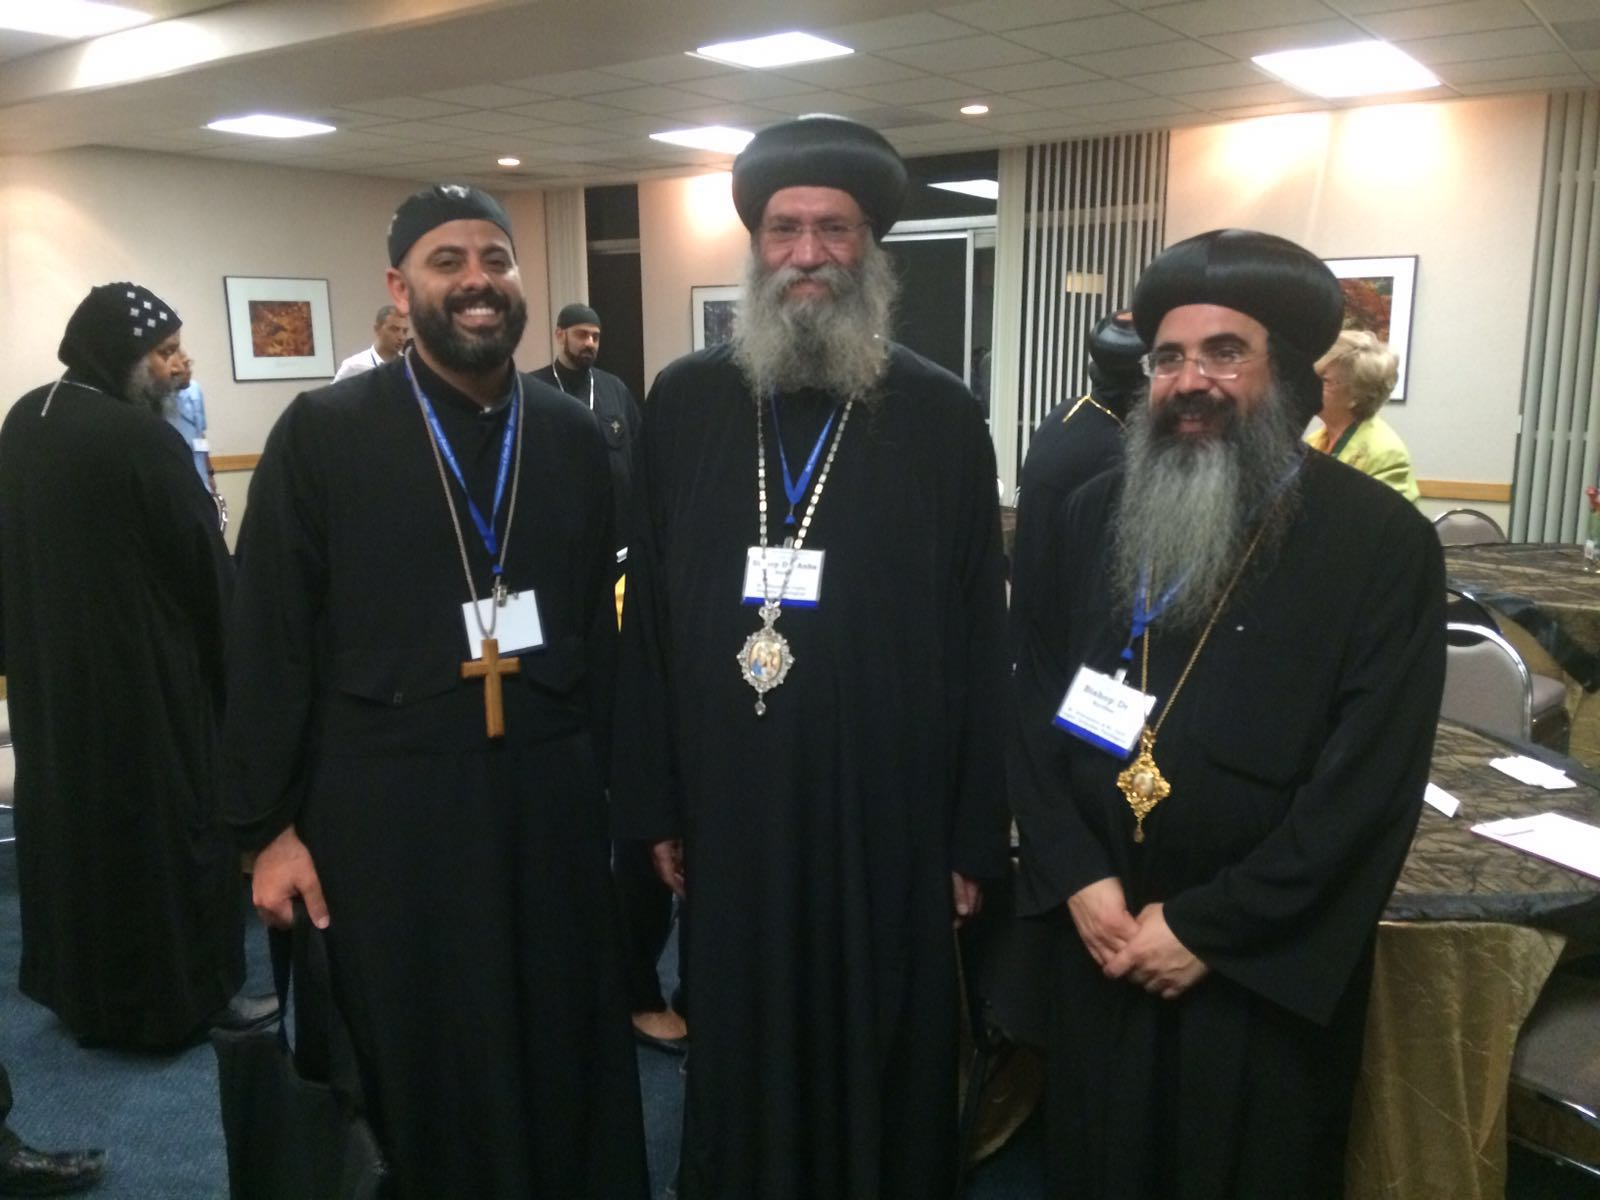 The Deans of three Coptic Orthodox Theological Institutions (Left to Right): Bishop Kyrillos (ACTS, Claremont), Bishop Suriel (St Athanasius Theological College, Melbourne), and Fr Daniel Fanous (St Cyril's Theological College, Sydney)